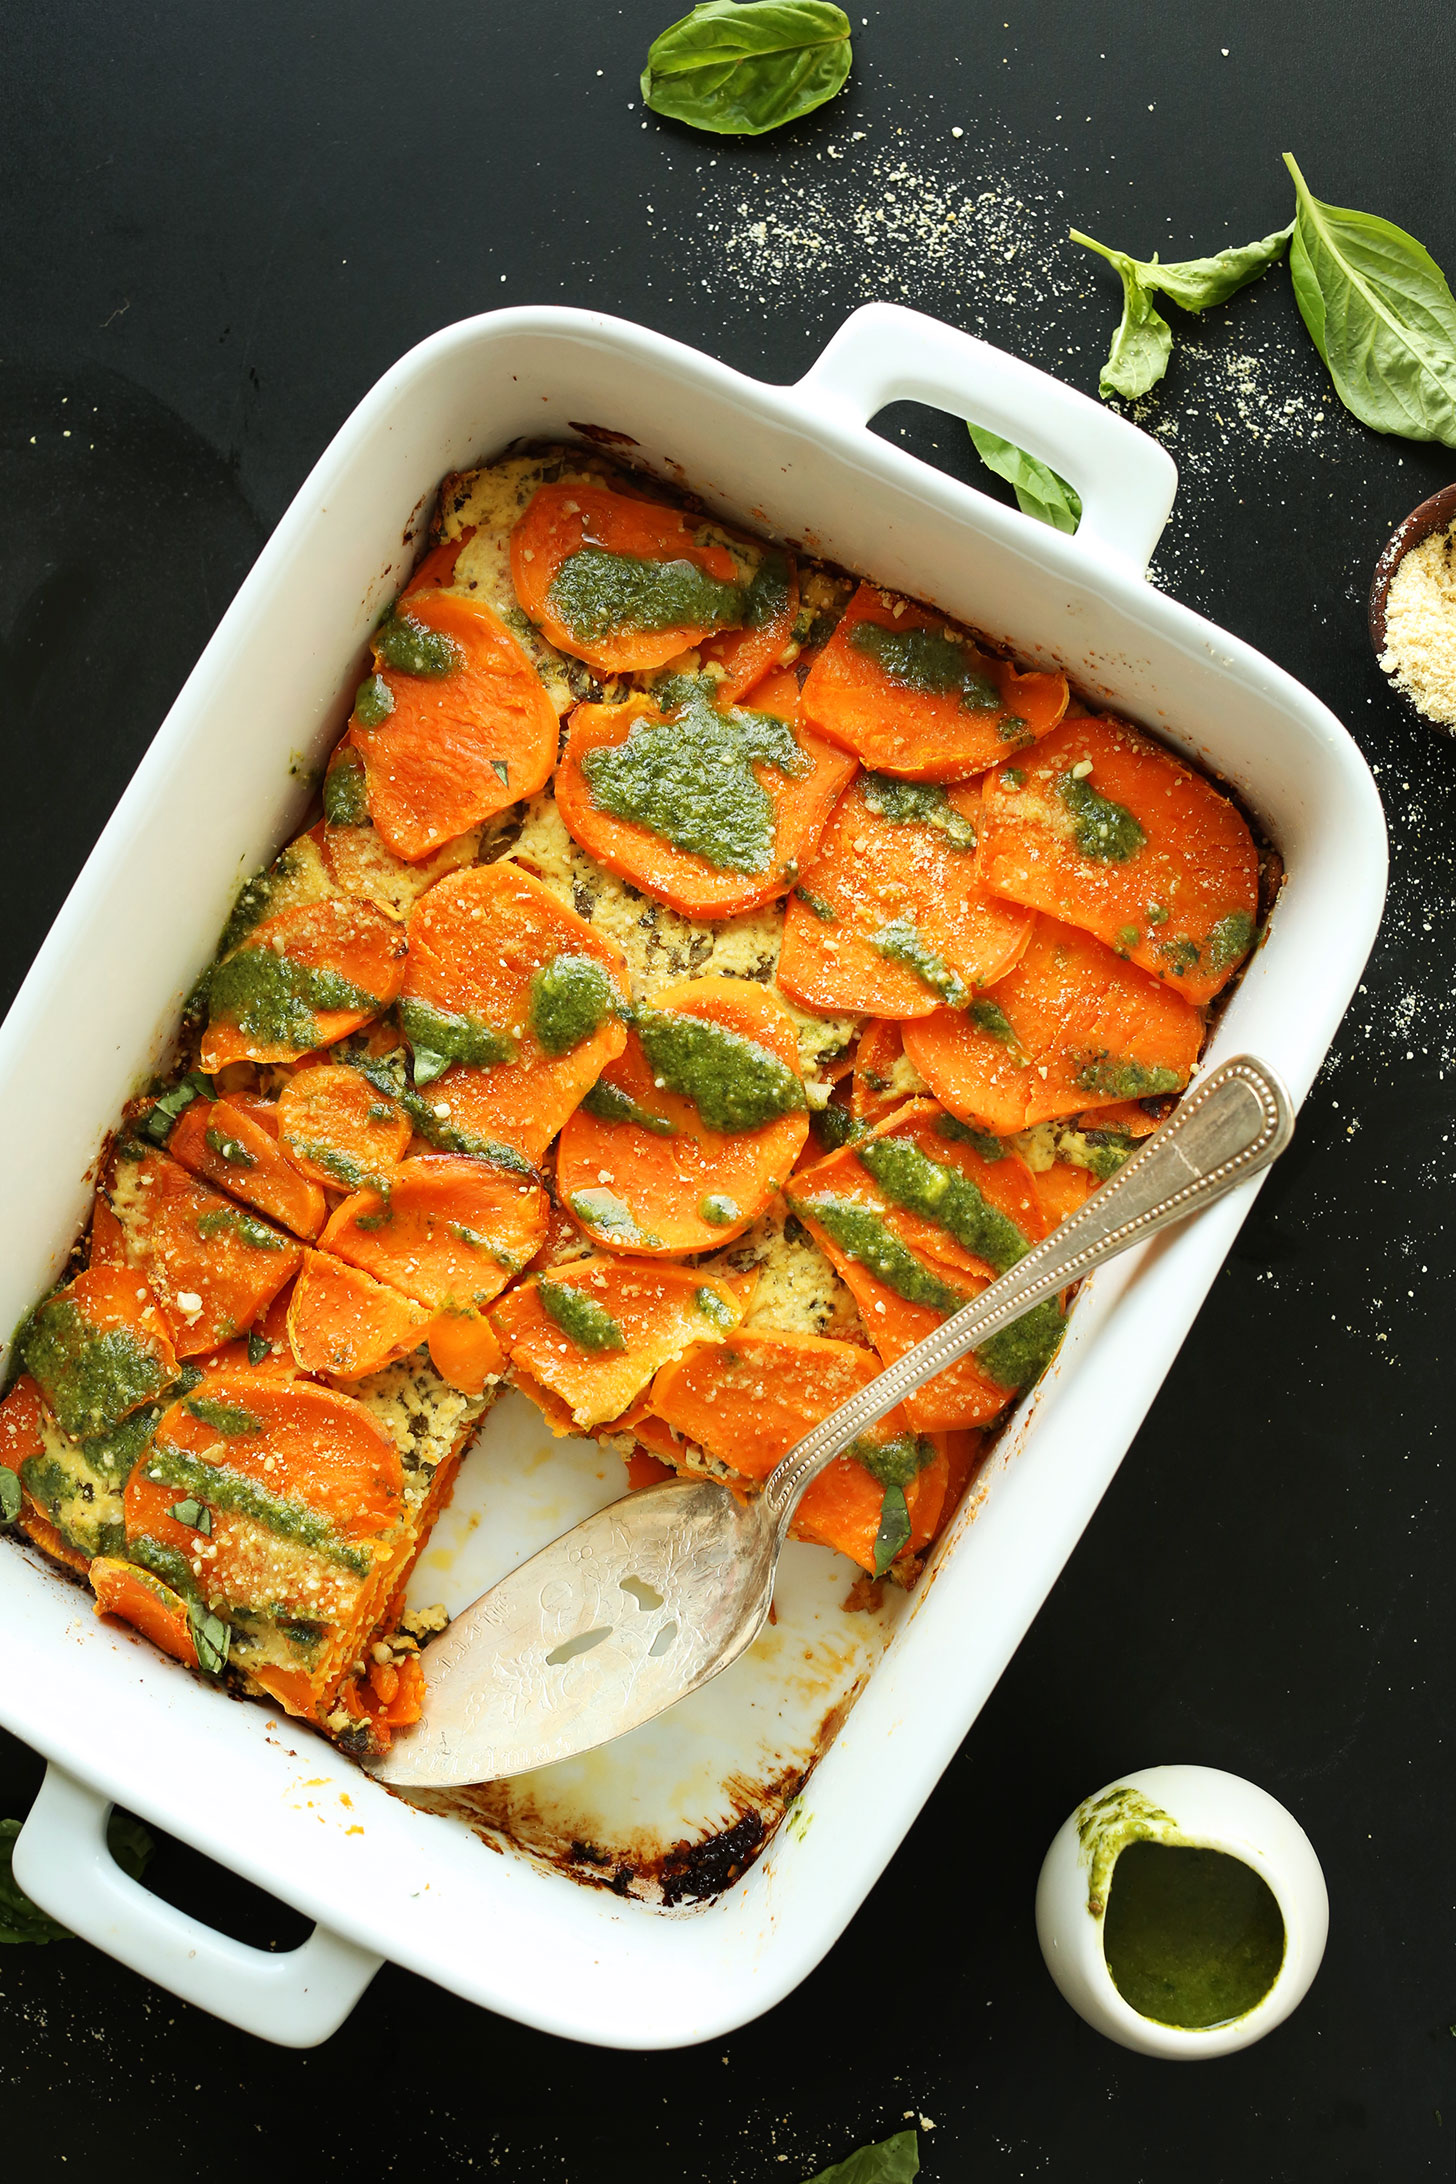 Ceramic baking dish filled with our amazing Vegan Sweet Potato Lasagna recipe